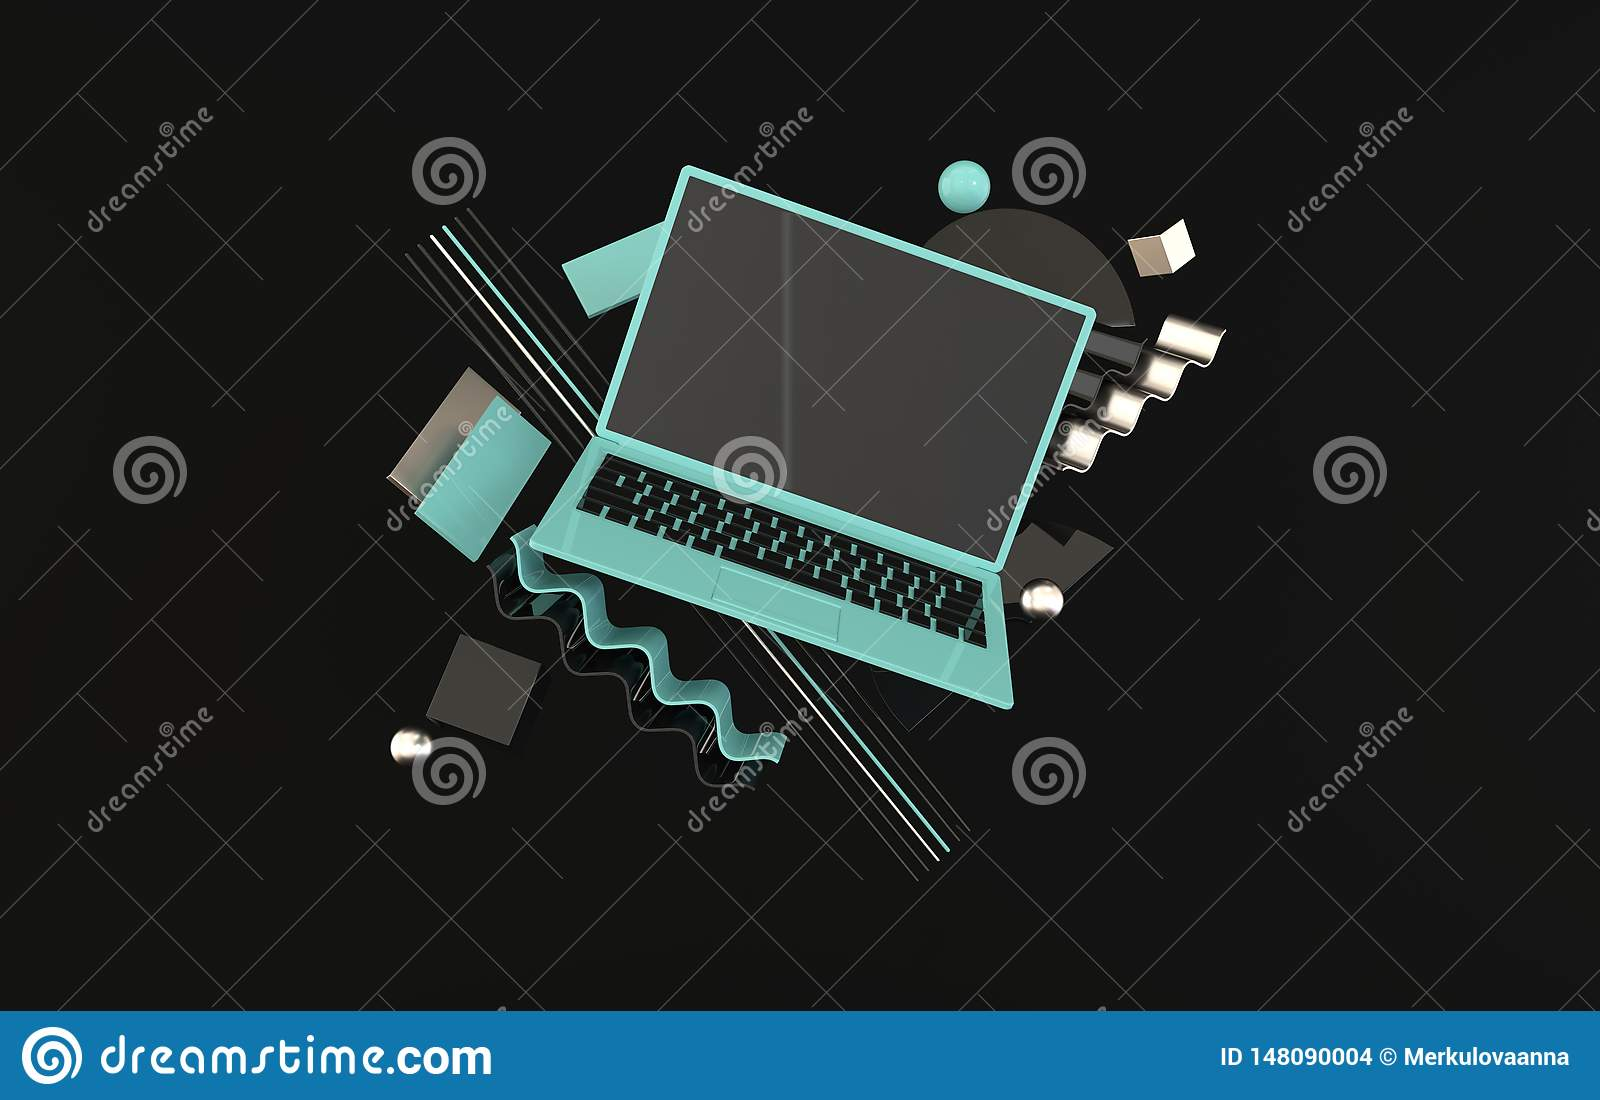 Laptop and different geometric objects mockup background in modern minimal style. Notebook 3d render in black and blue colors.